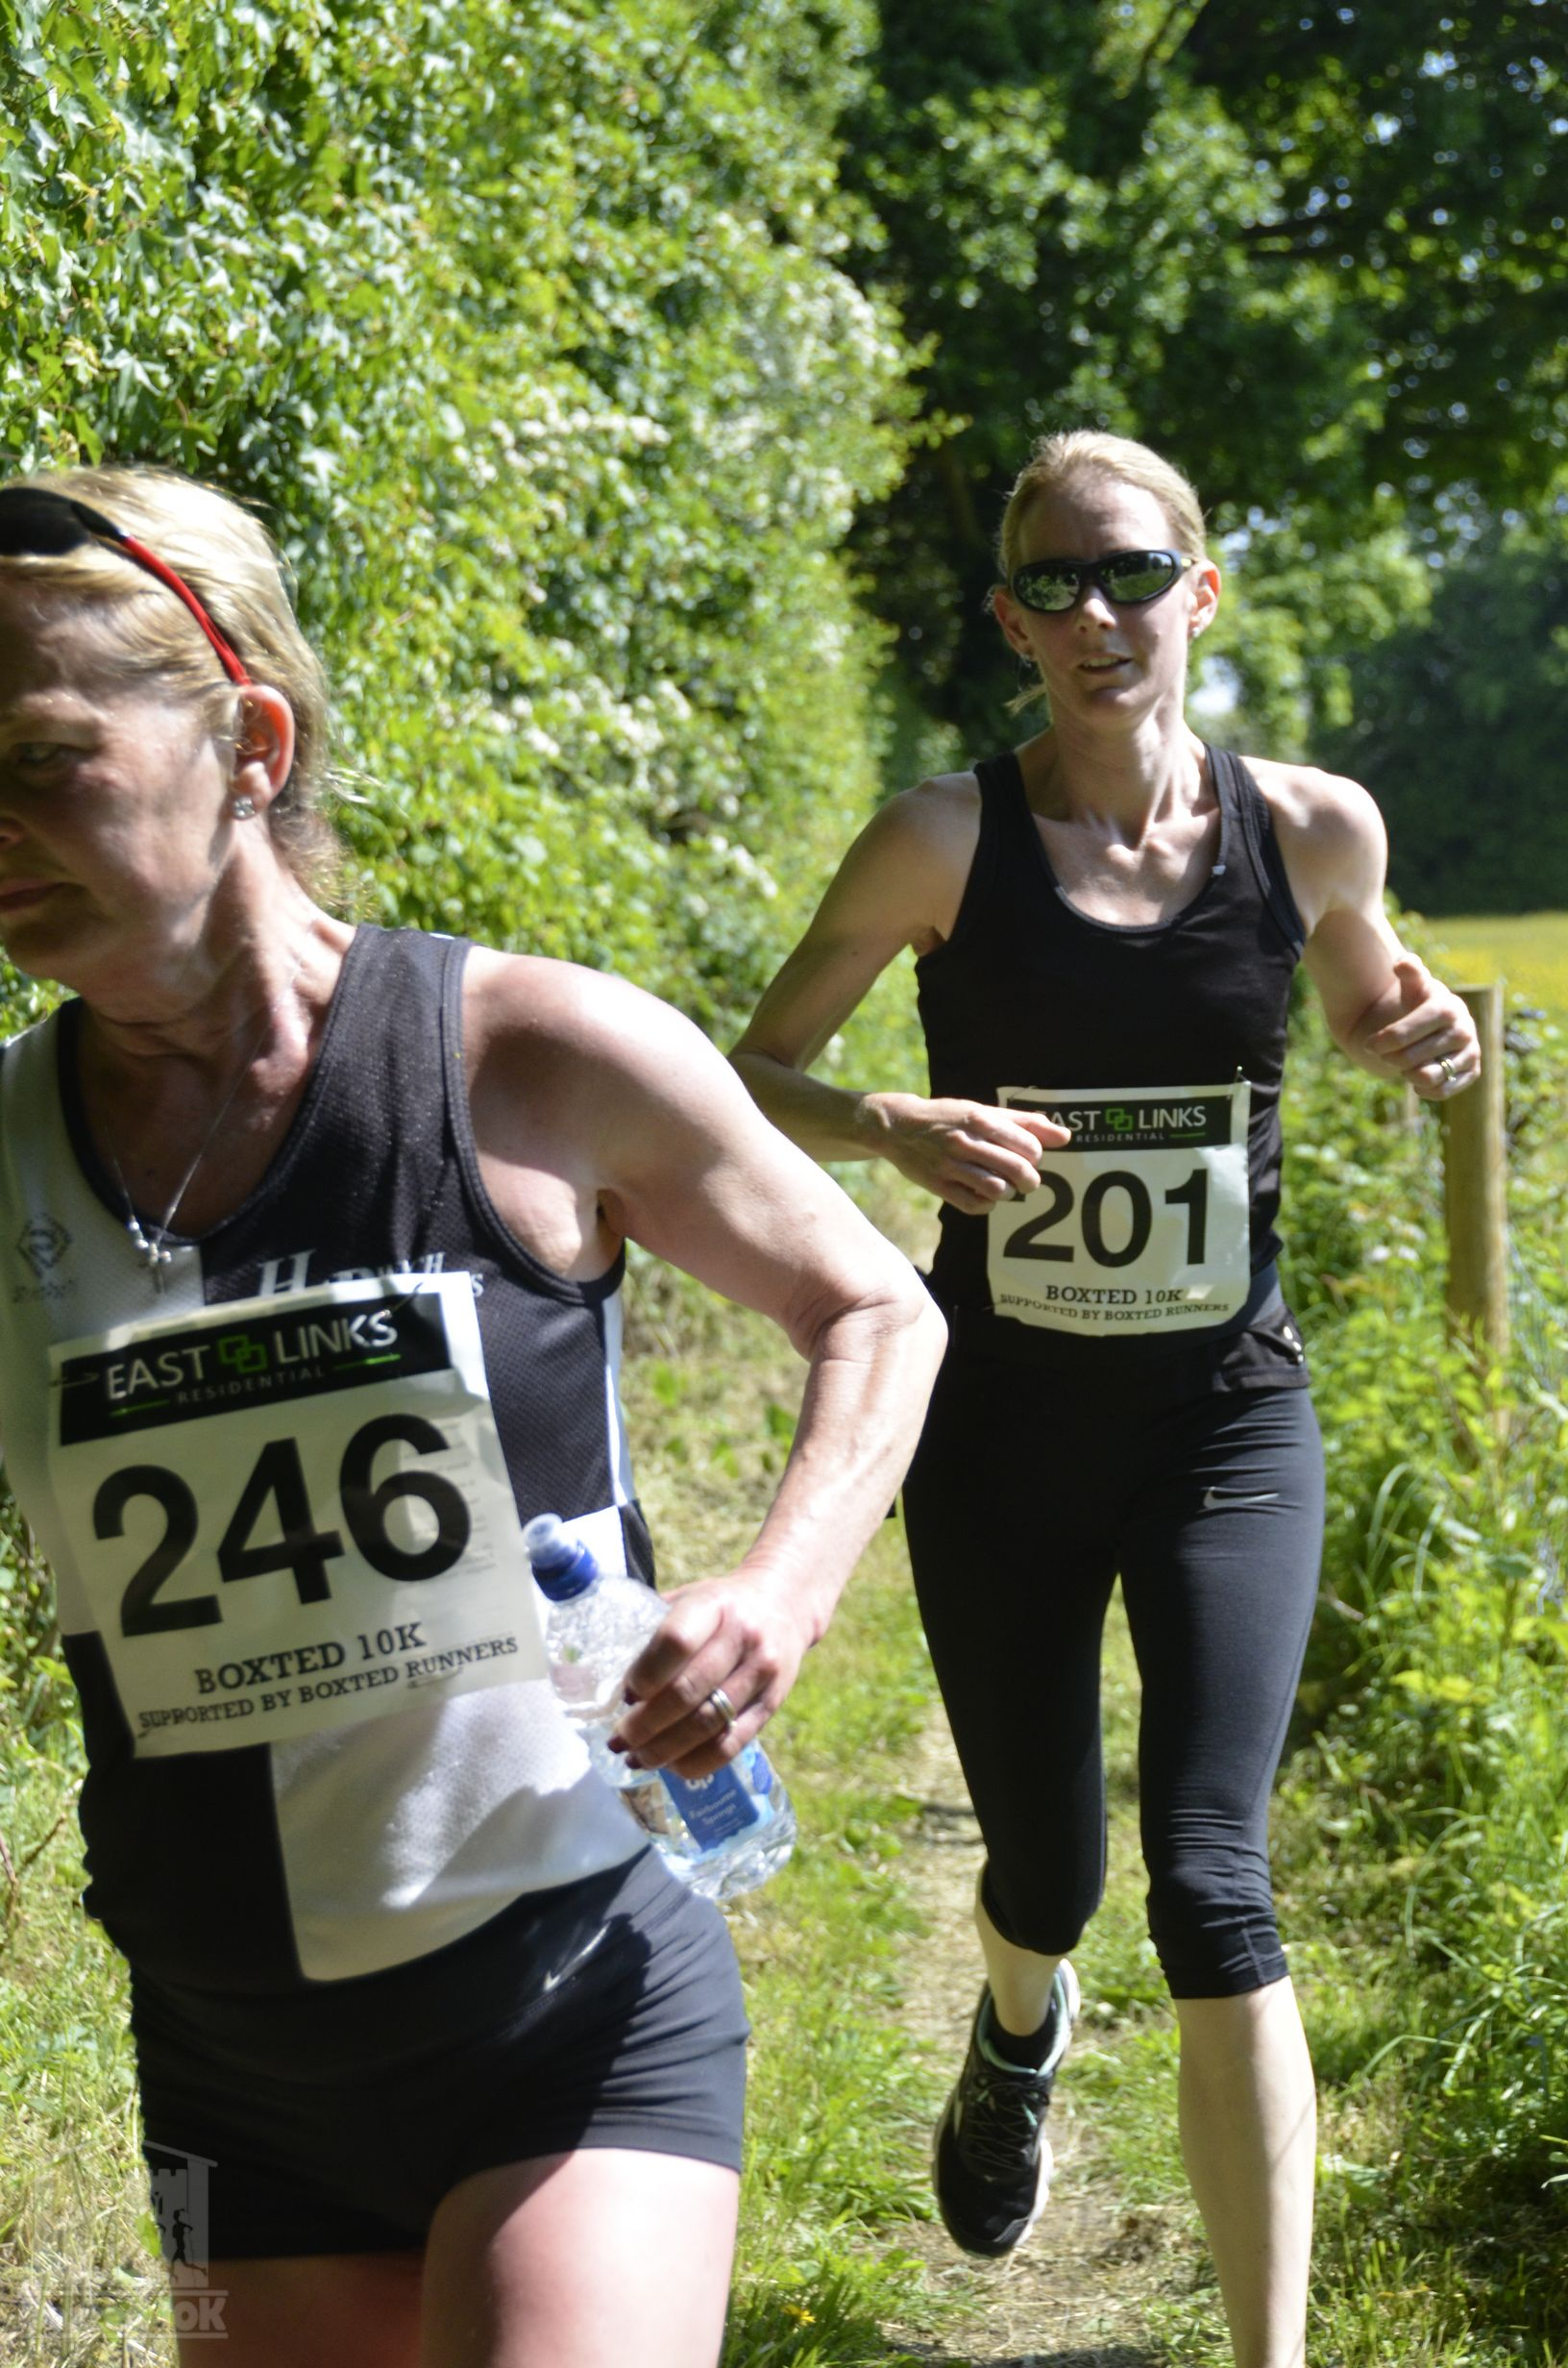 Boxted10k-00140